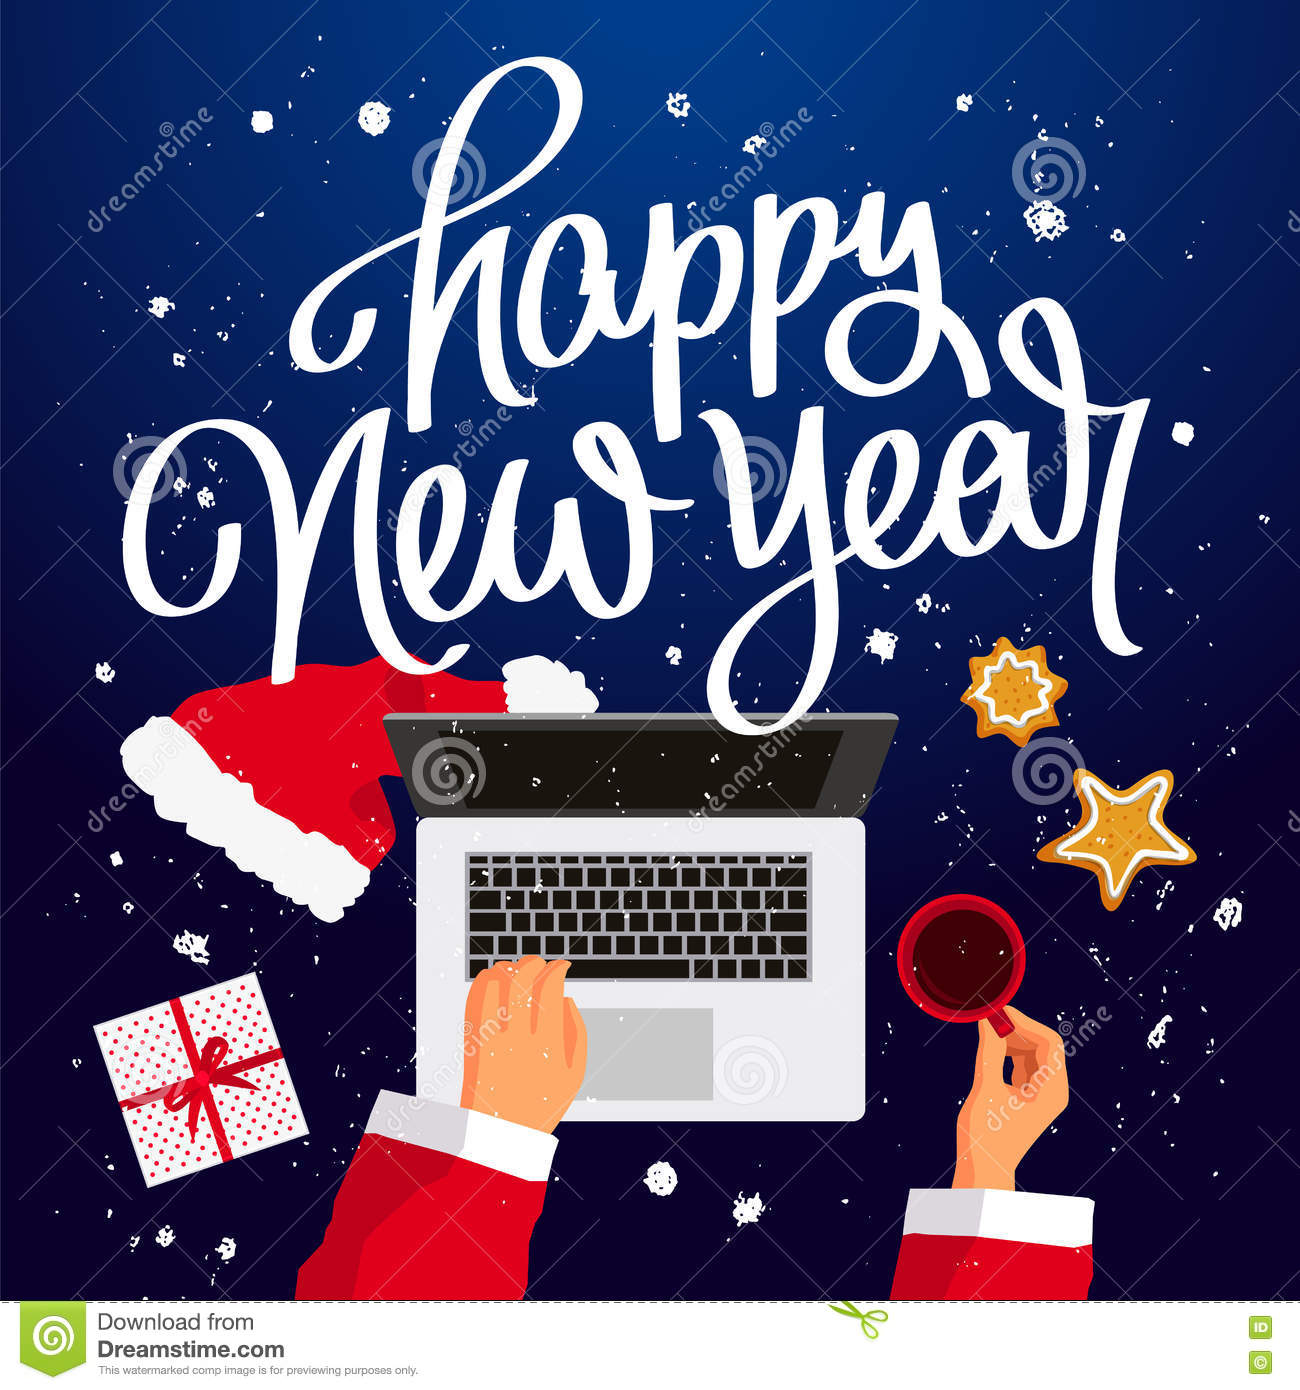 02c2d8cde4c67 happy-new-year-santa-claus-his-laptop-quote-cup -coffee-gift-box-ginger-biscuits-table-excellent-years-gift-78356055.jpg